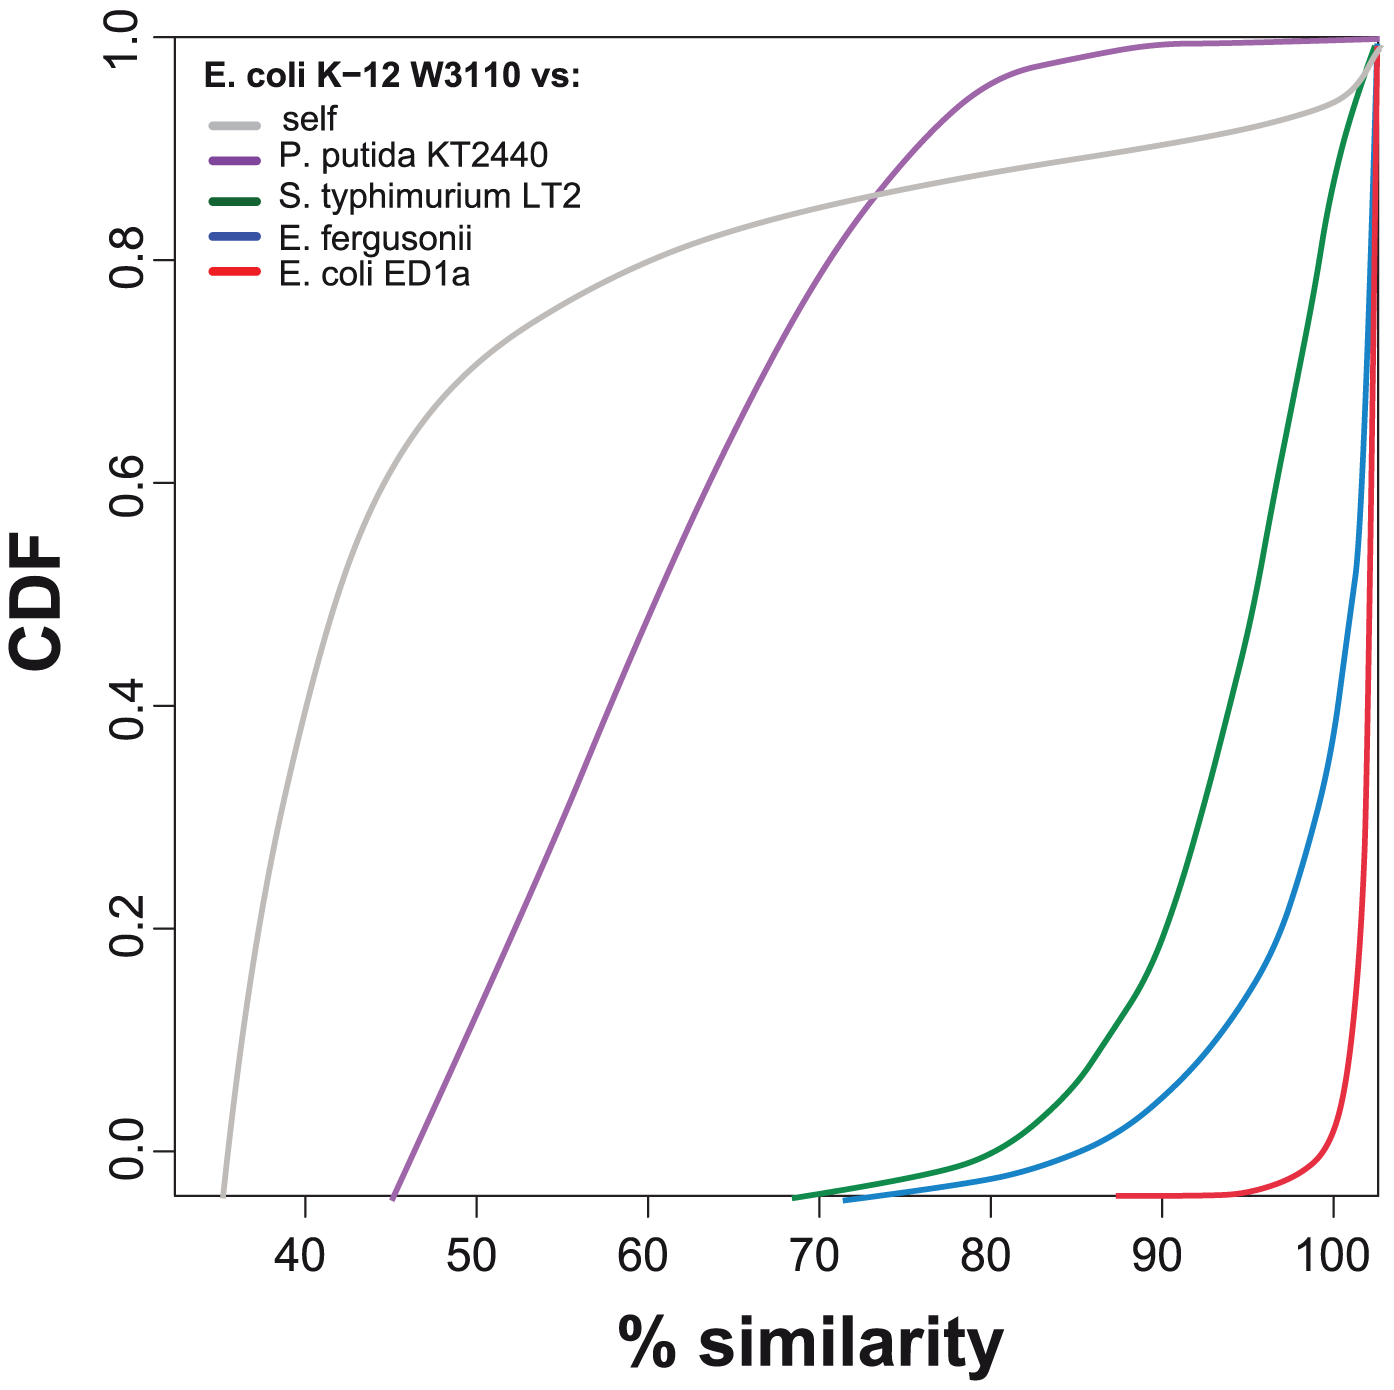 Cumulative distribution function plot of protein similarity.